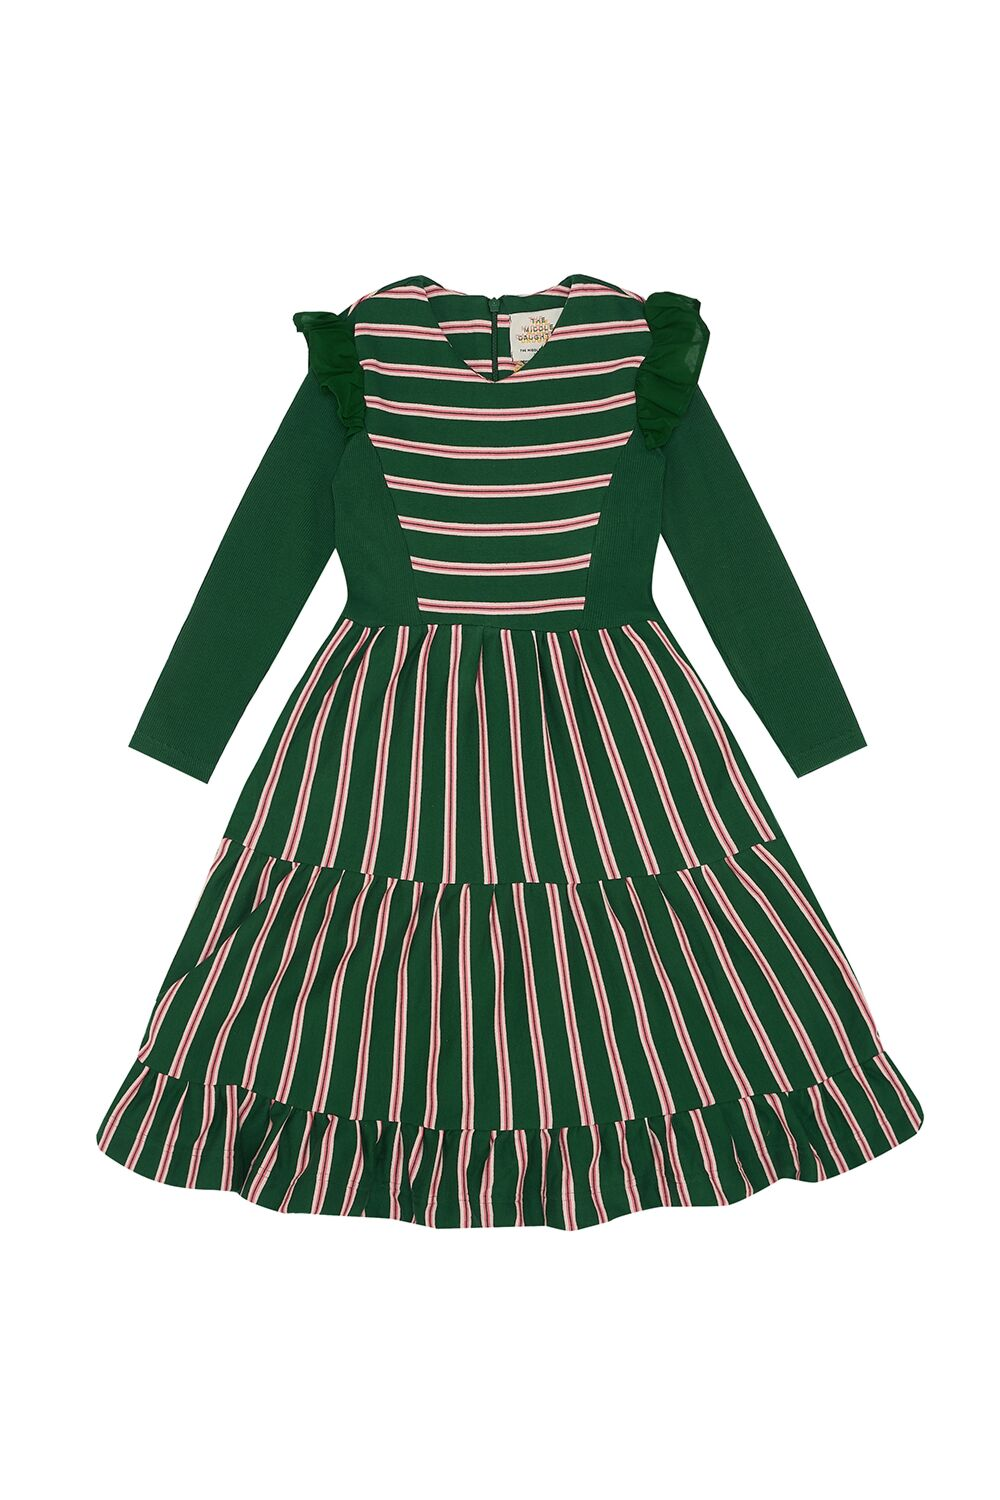 Middle Daughter Dress THREE TIERS FOR YOU Stripes GREEN